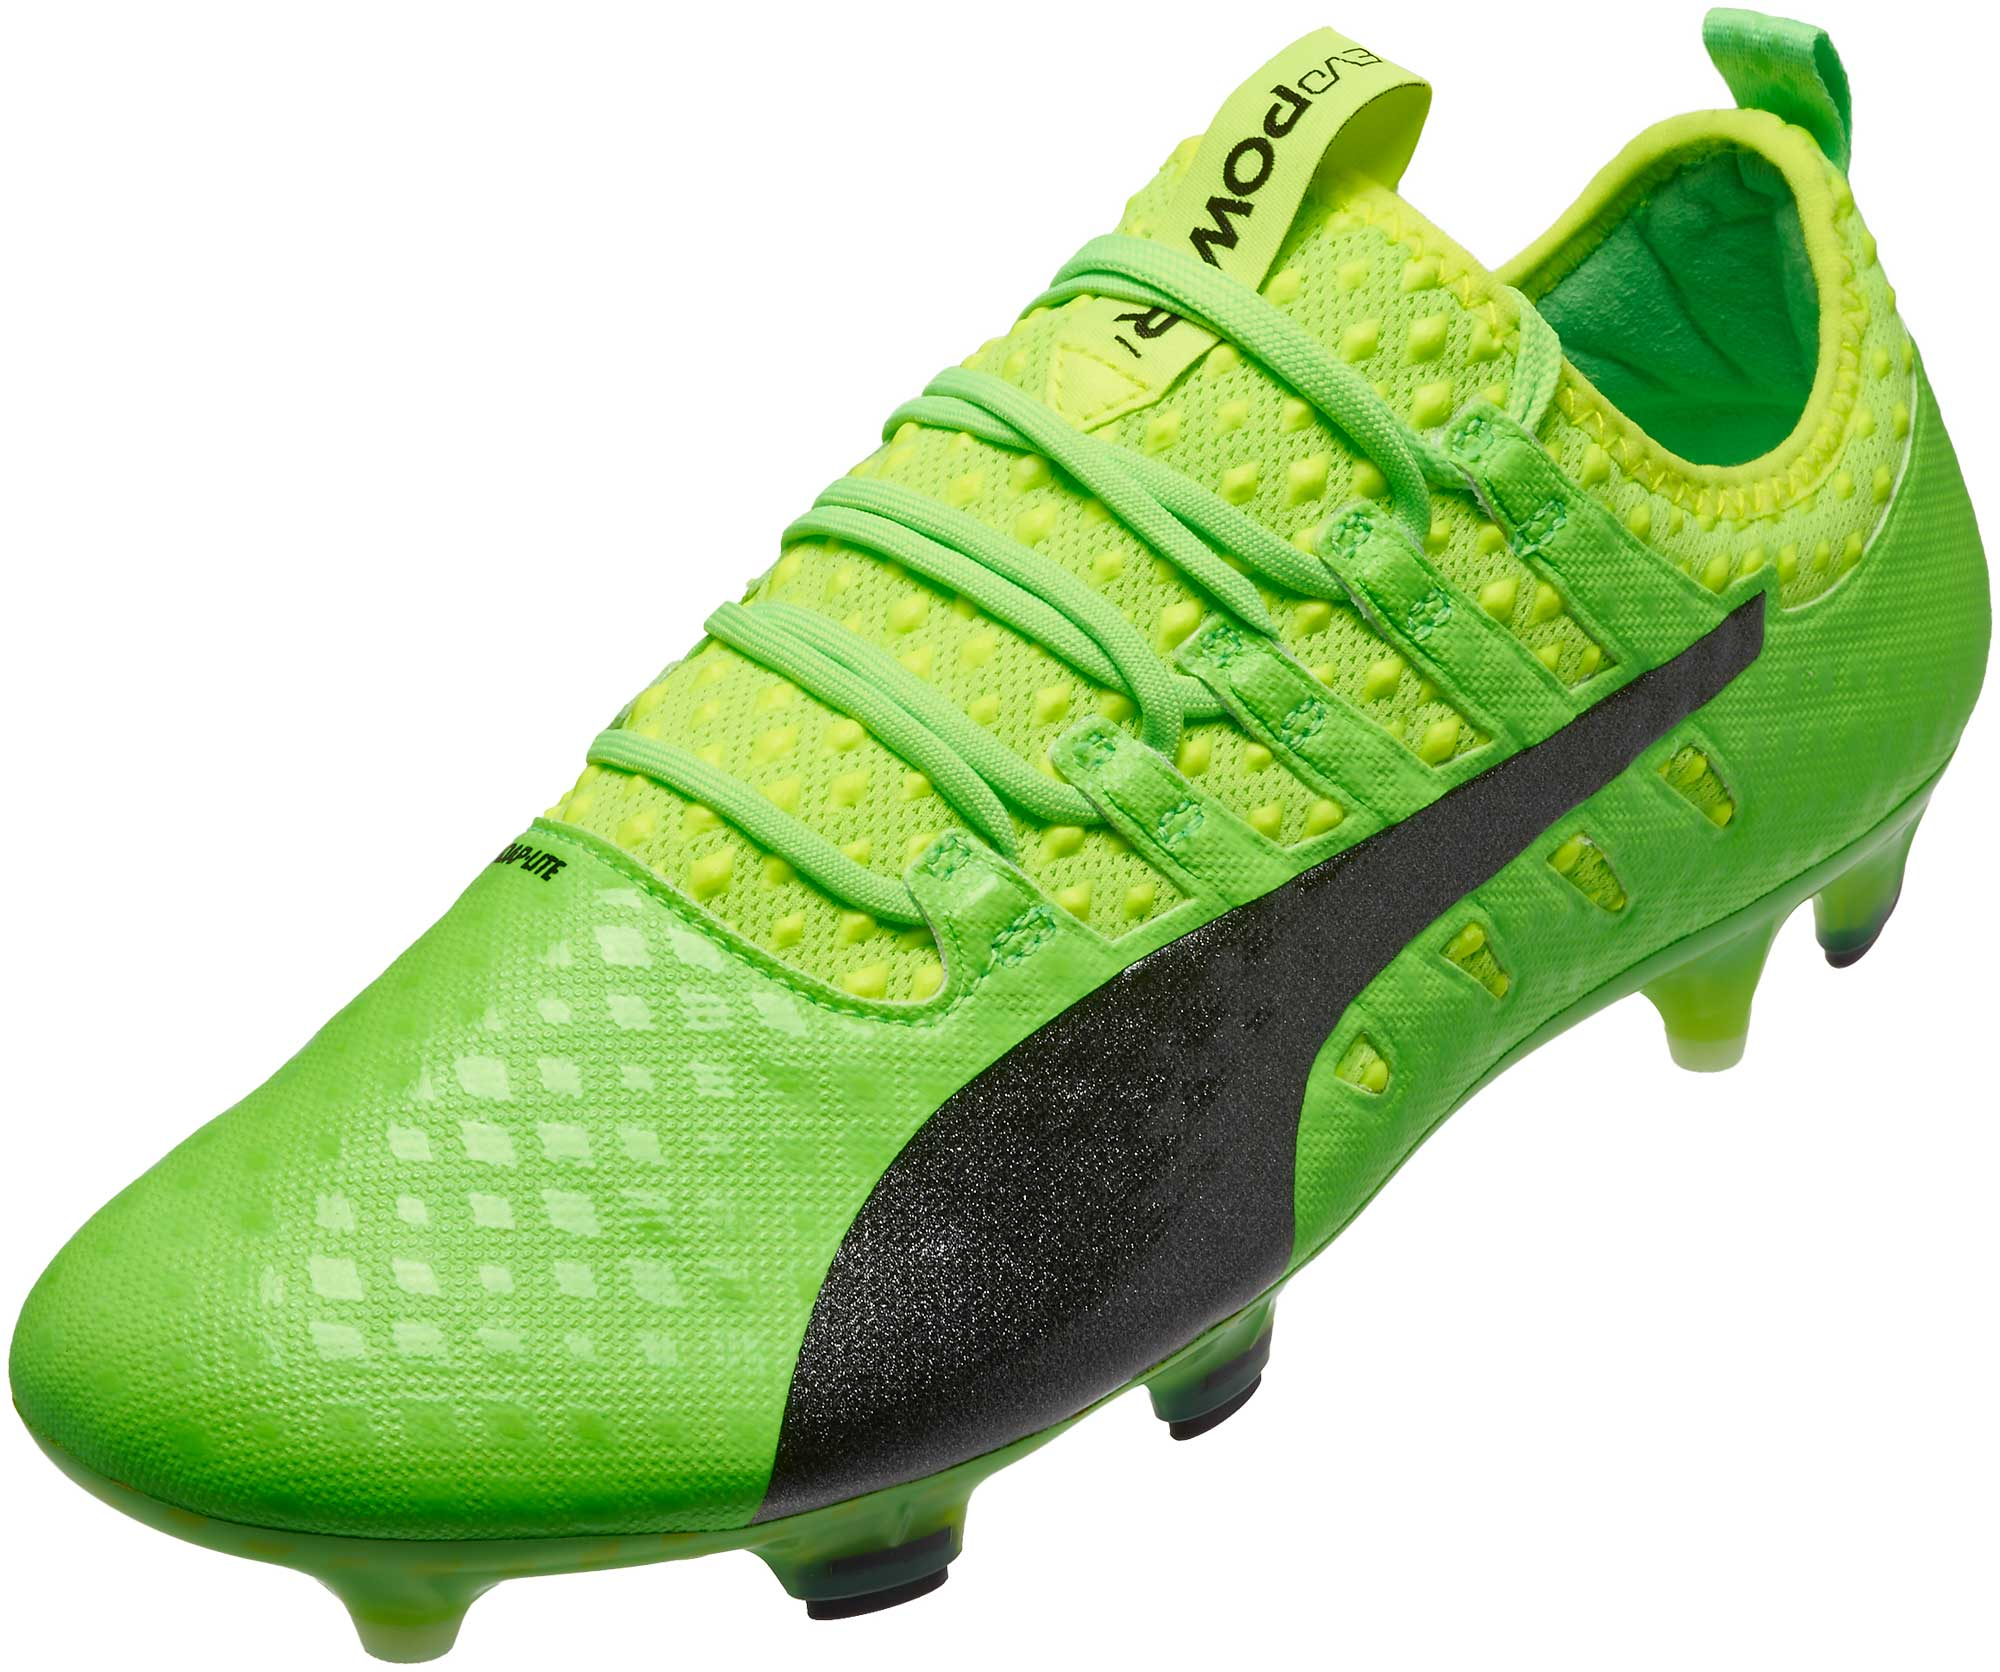 051027950d44 Puma evoPOWER Vigor 1 FG - Green Puma Soccer Cleats